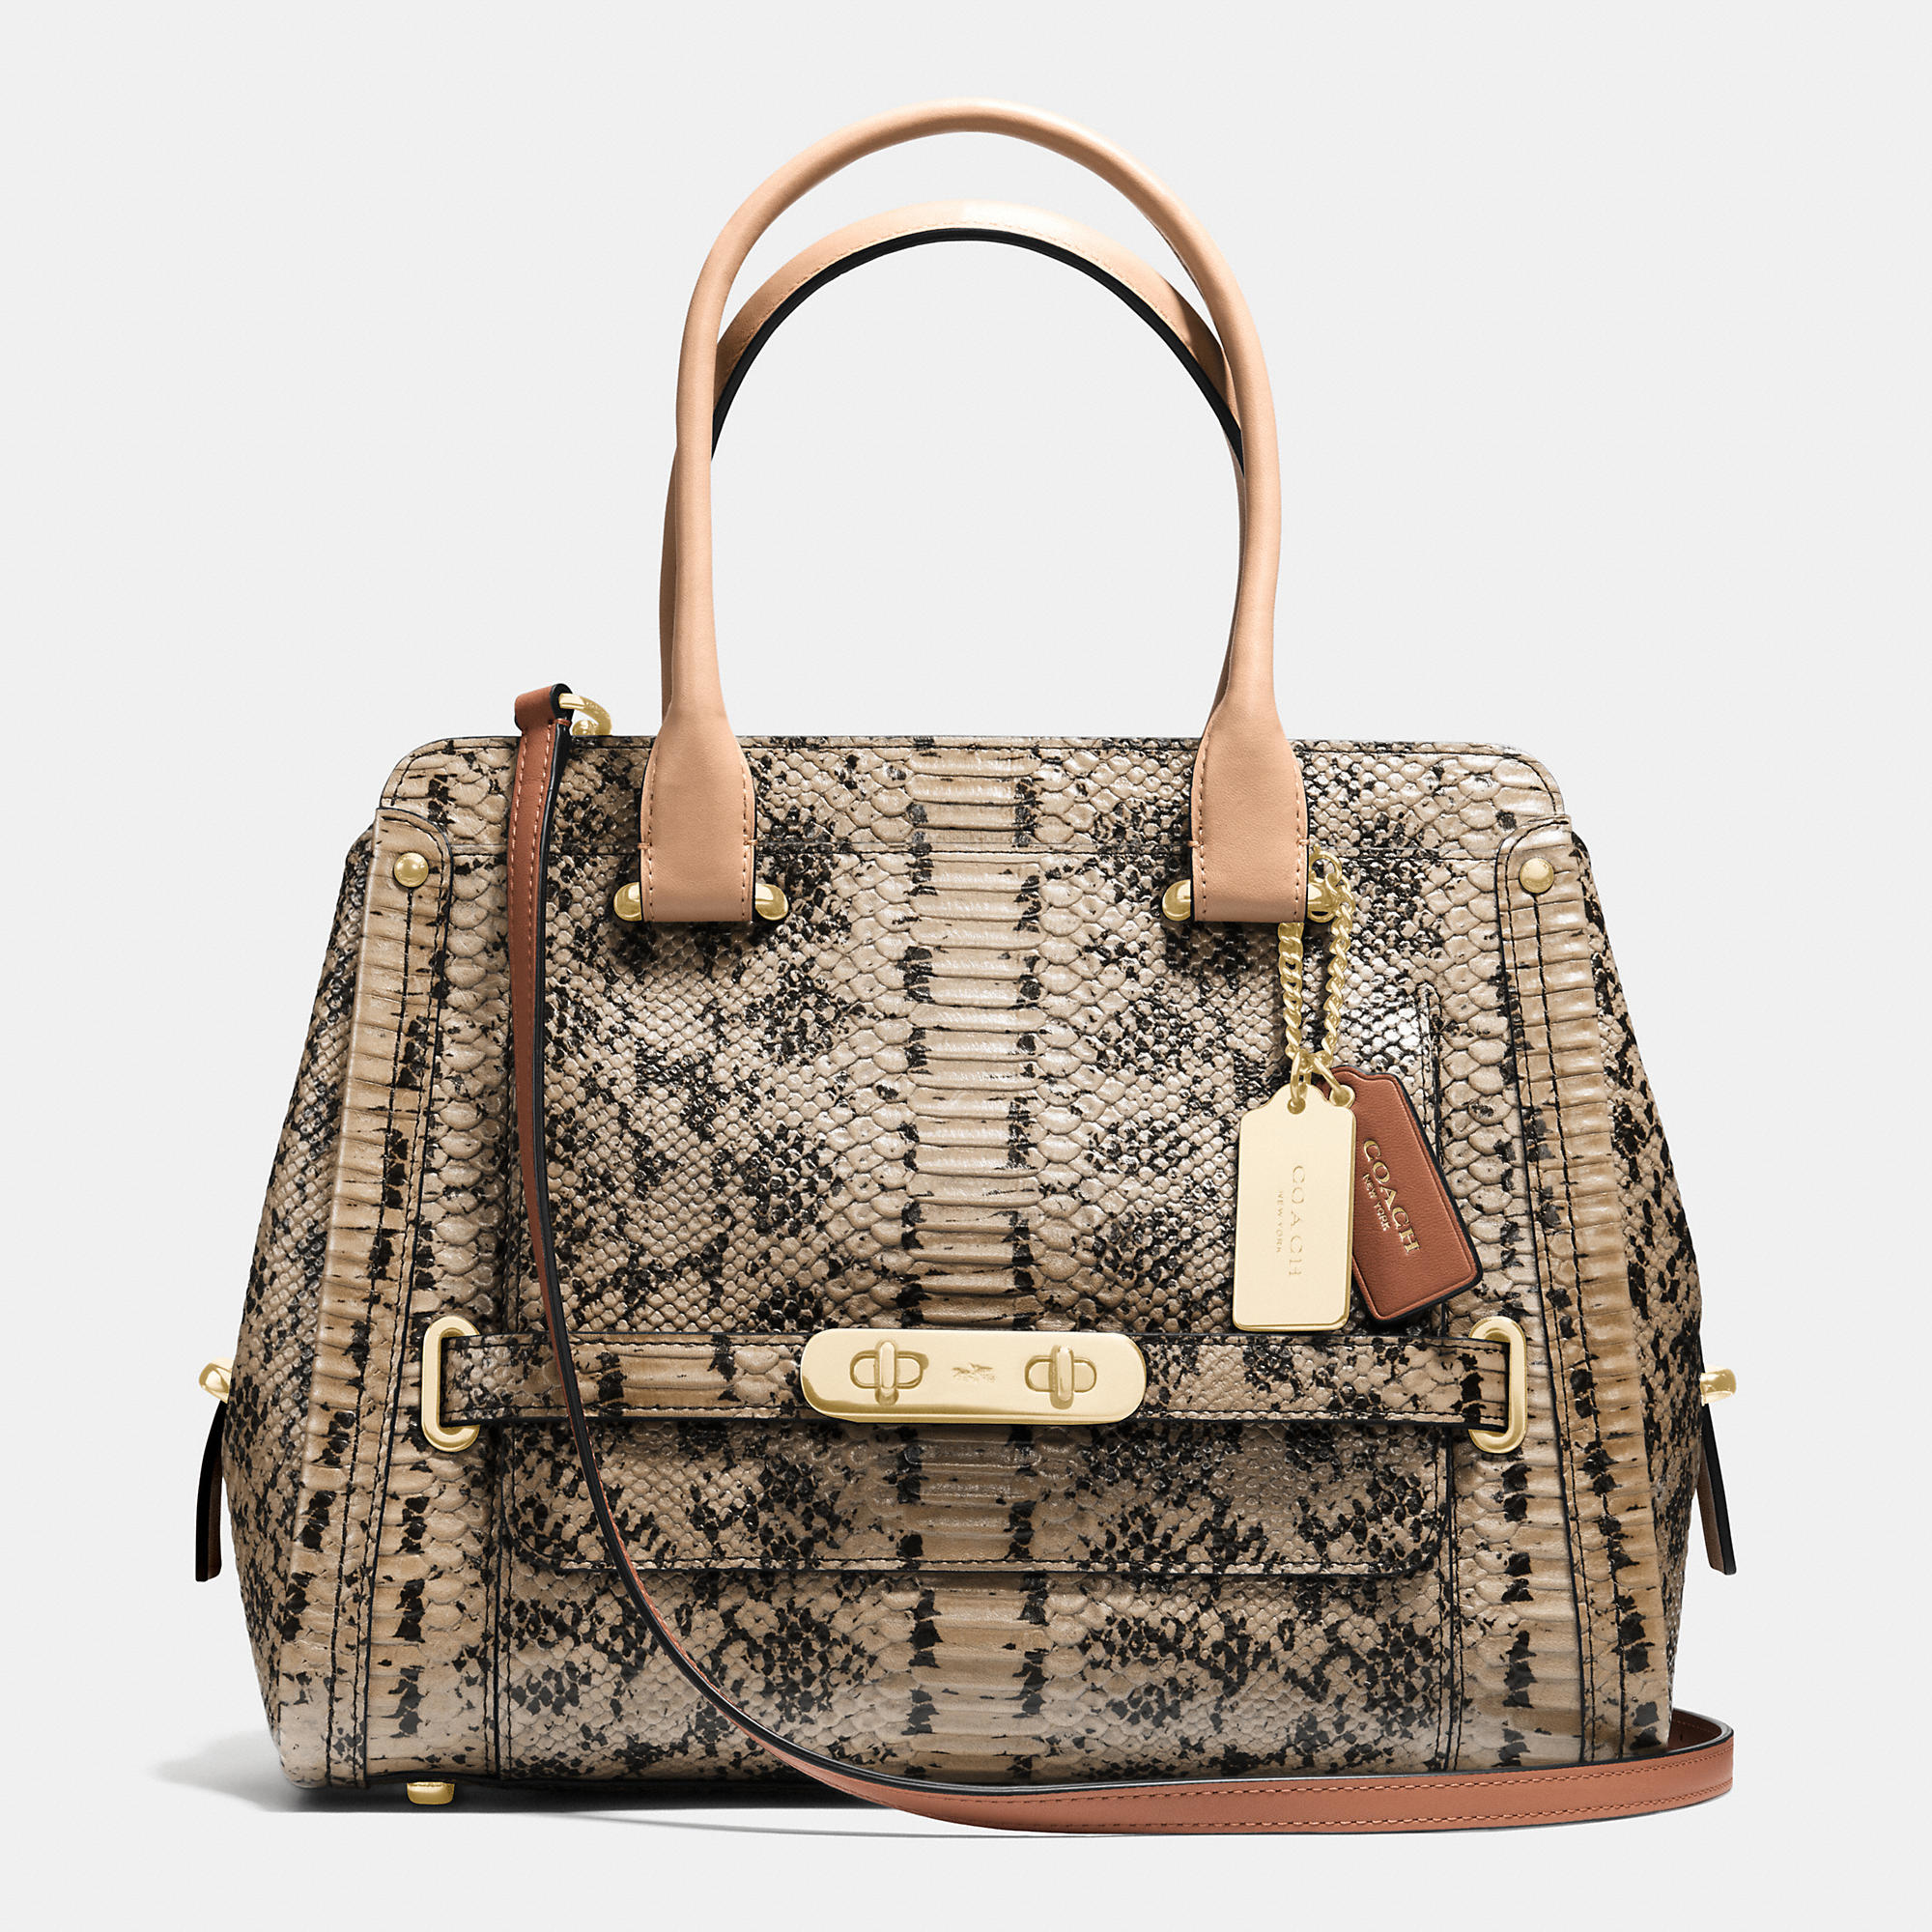 Coach Swagger Frame Satchel In Colorblock Exotic Embossed